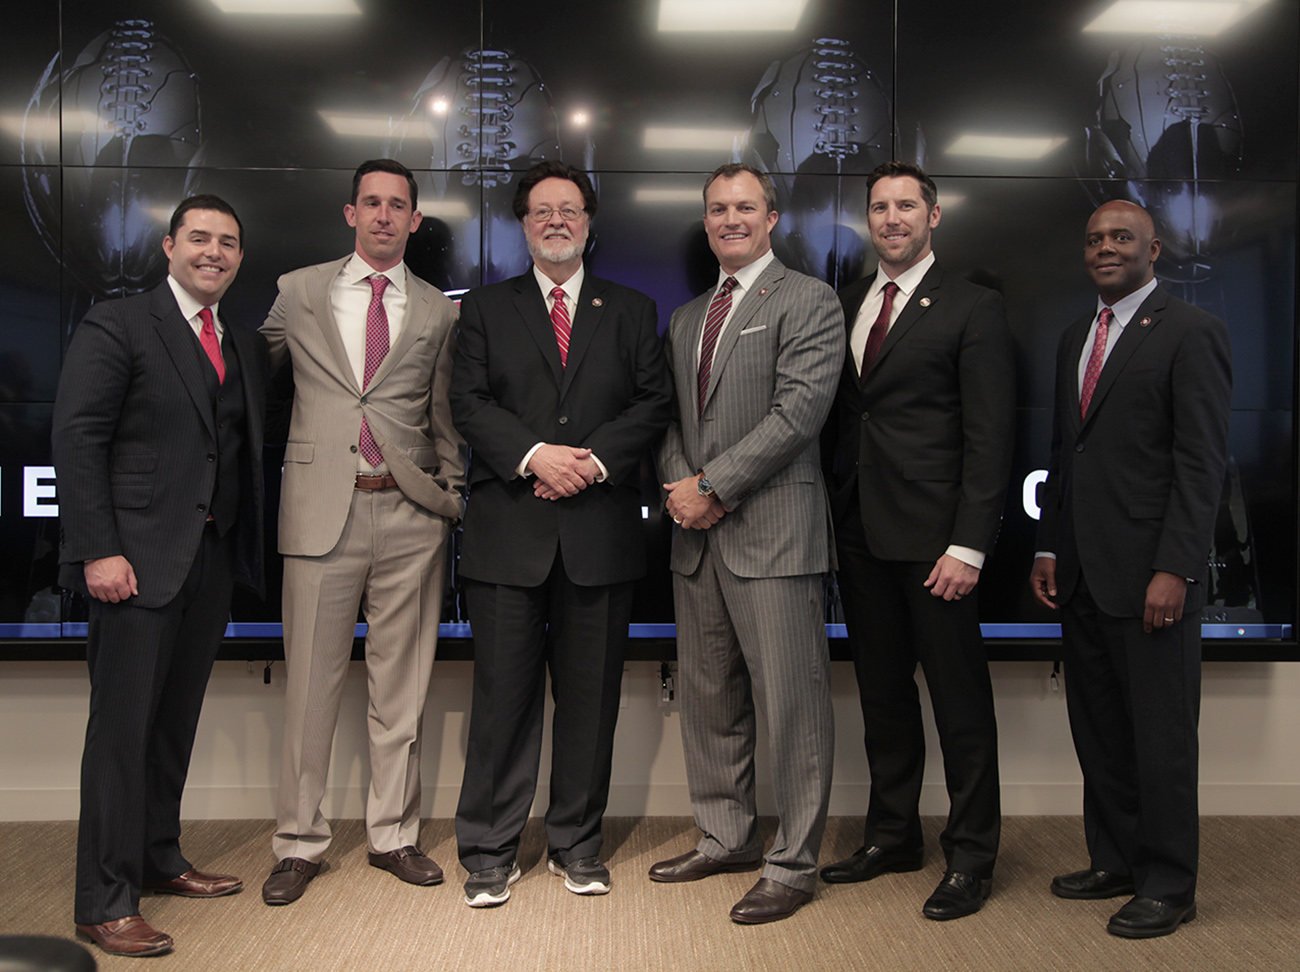 Left to right: Jed York, Shanahan, John York, Lynch, Peters and Mayhew